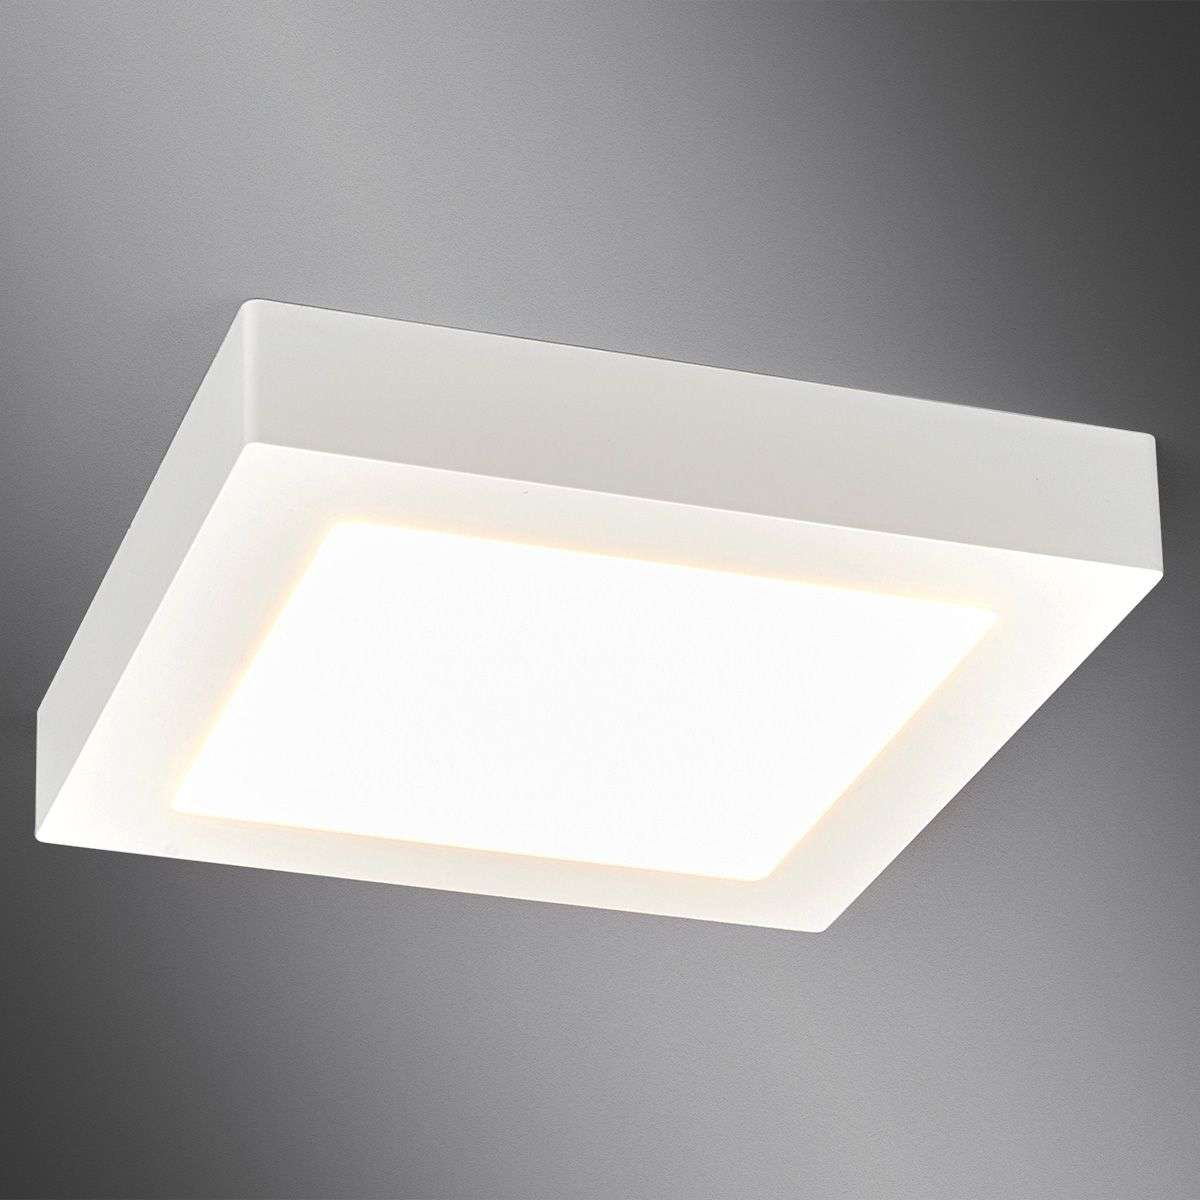 High Quality White, Square LED Bathroom Ceiling Light Rayan 9978024 31